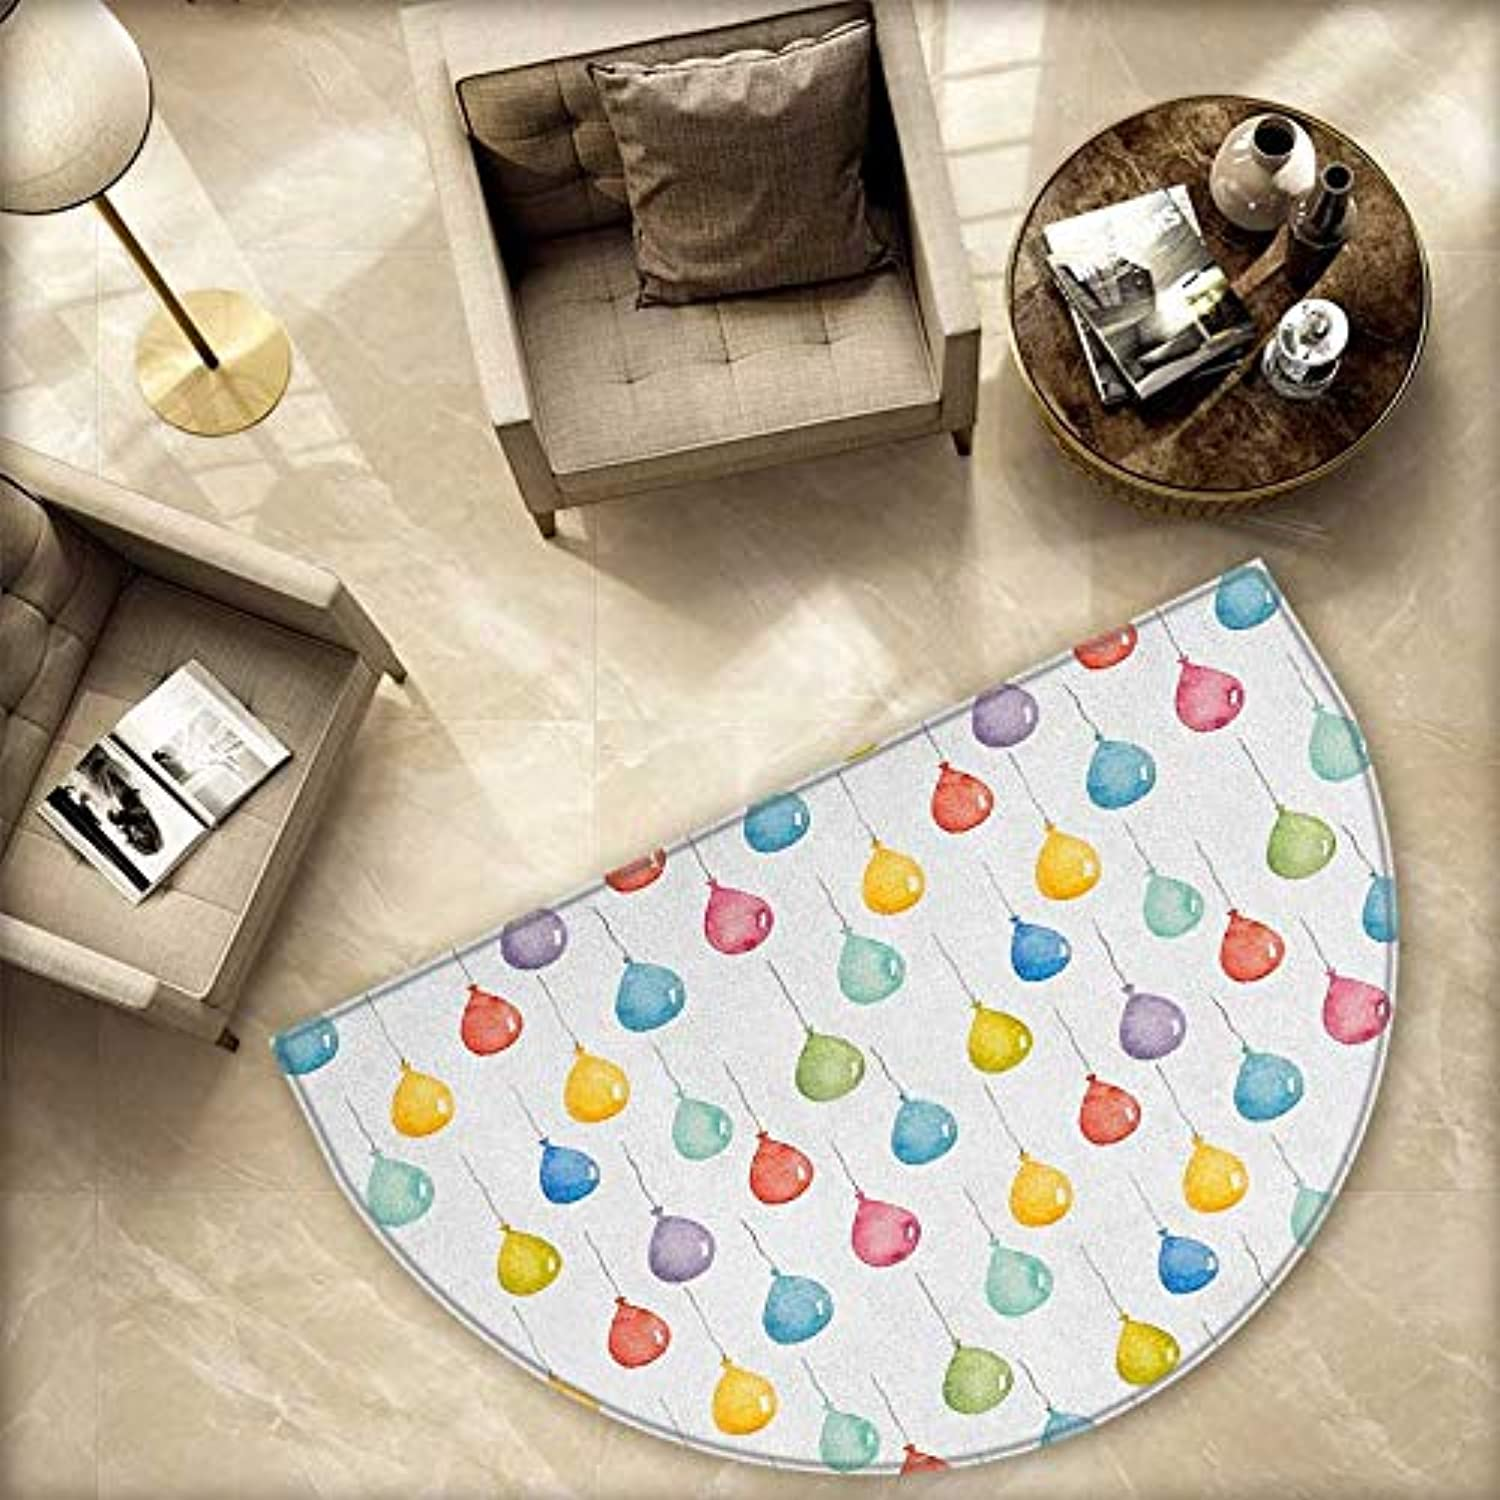 Kids Semicircle Doormat Festival Entertainment Carnival Theme Flying Balloons Watercolors Celebration Surprise Halfmoon doormats H 78.7  xD 118.1  Multicolor